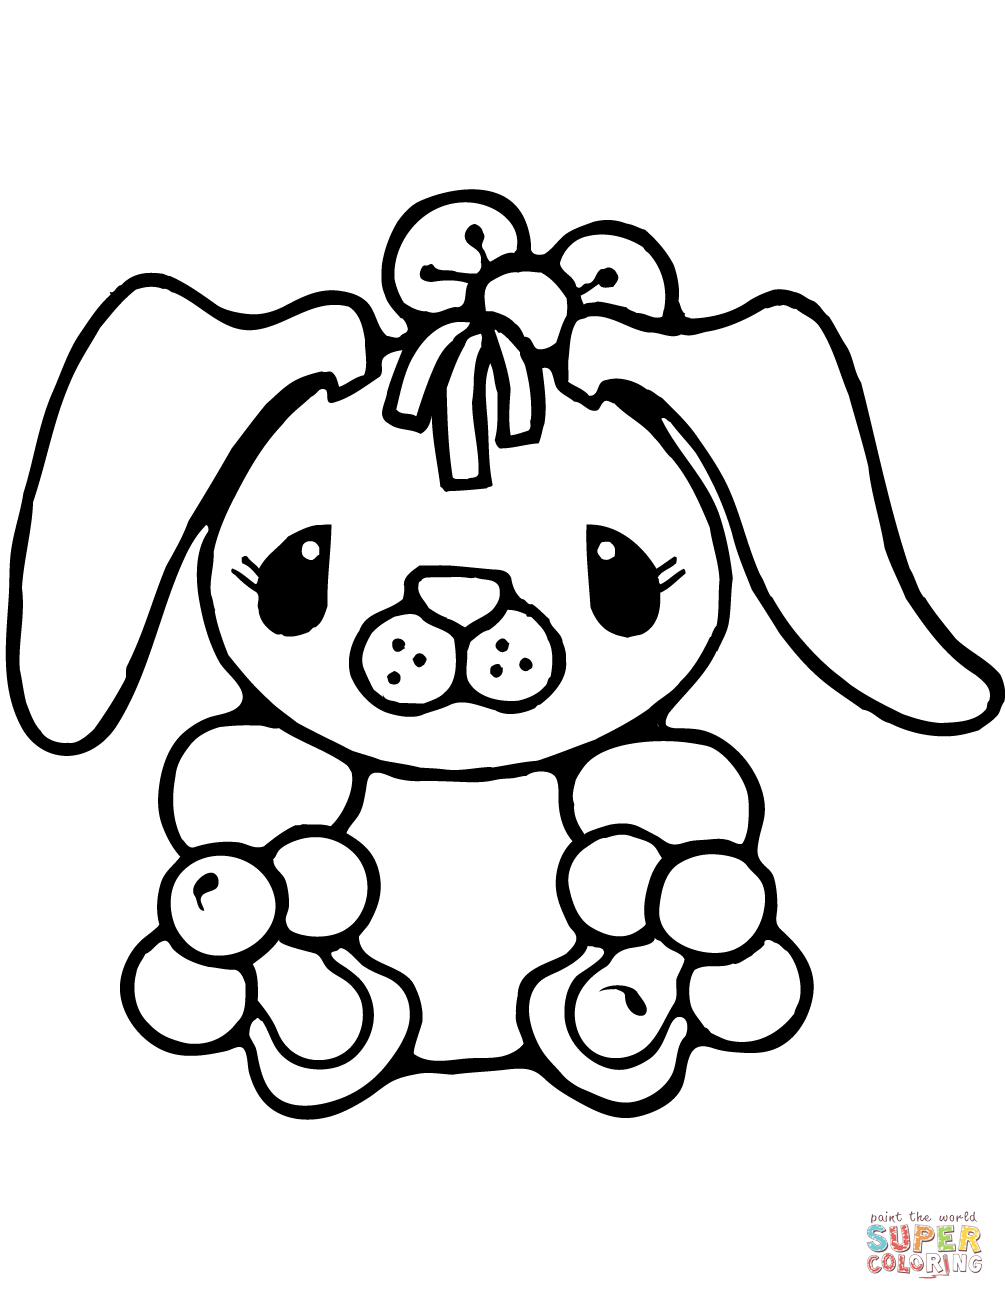 Tiny Bunny Rabbit Coloring Page